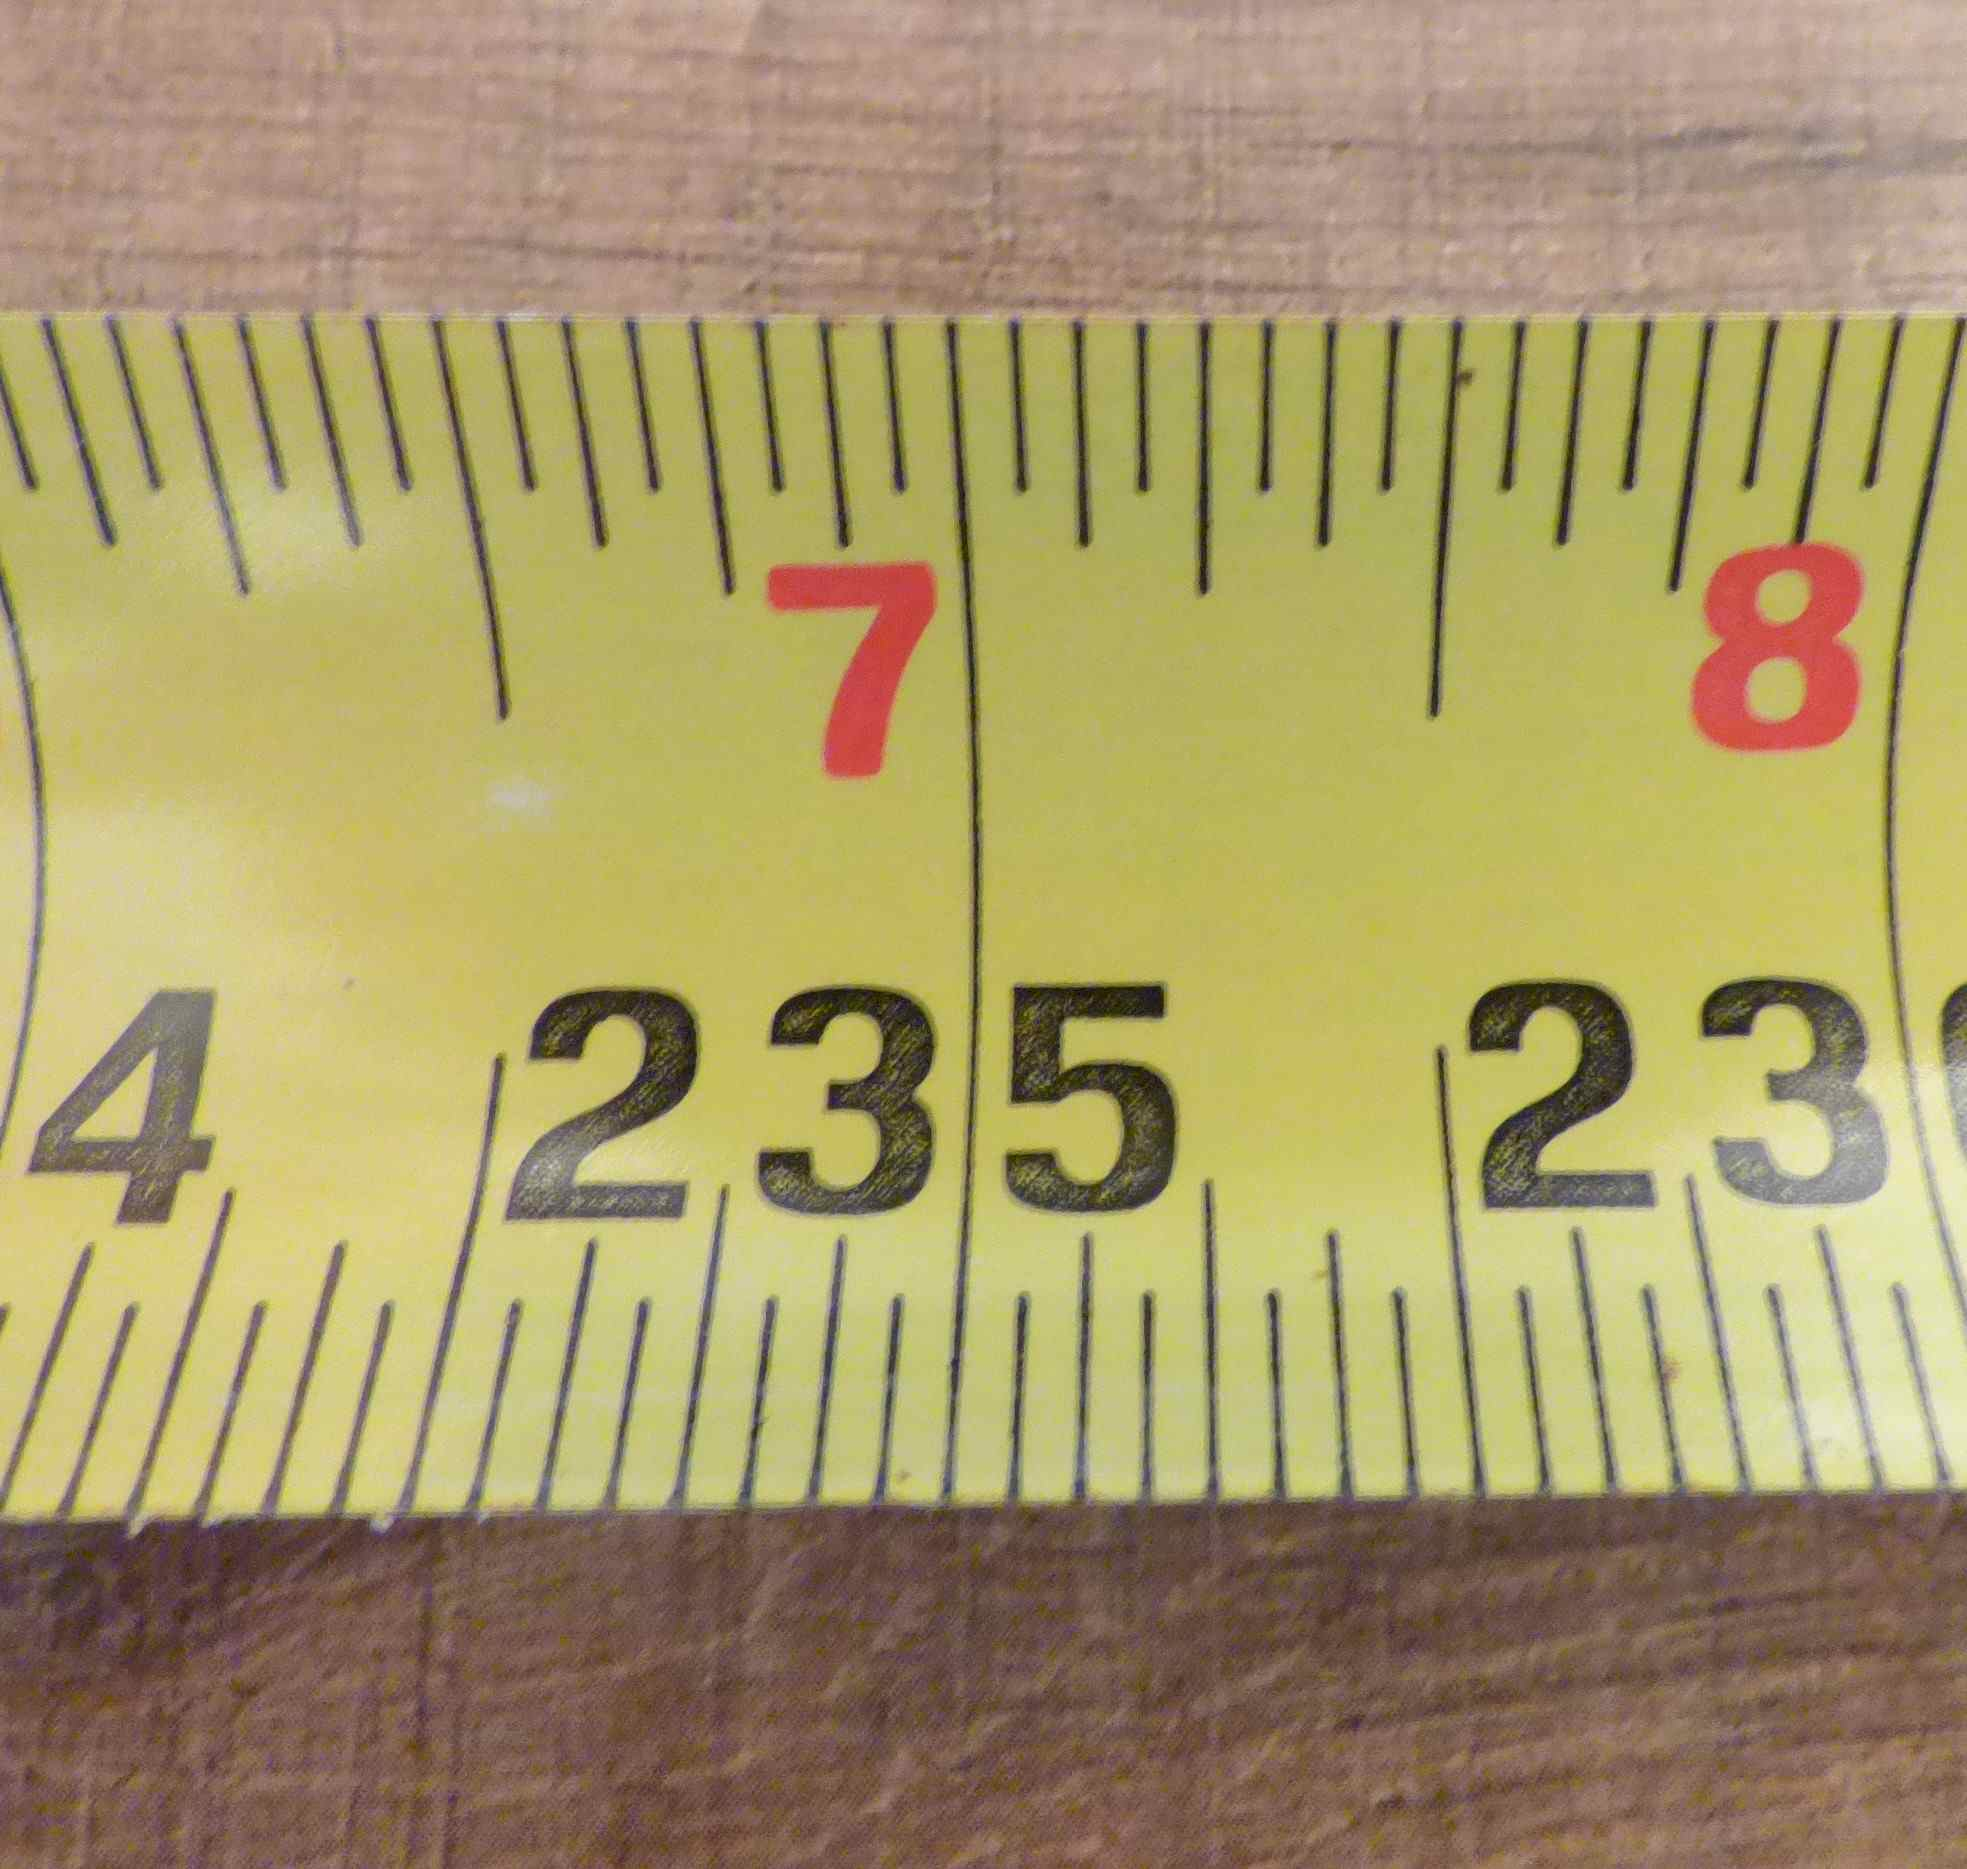 Tape Measure Half and Quarter Inch Marks